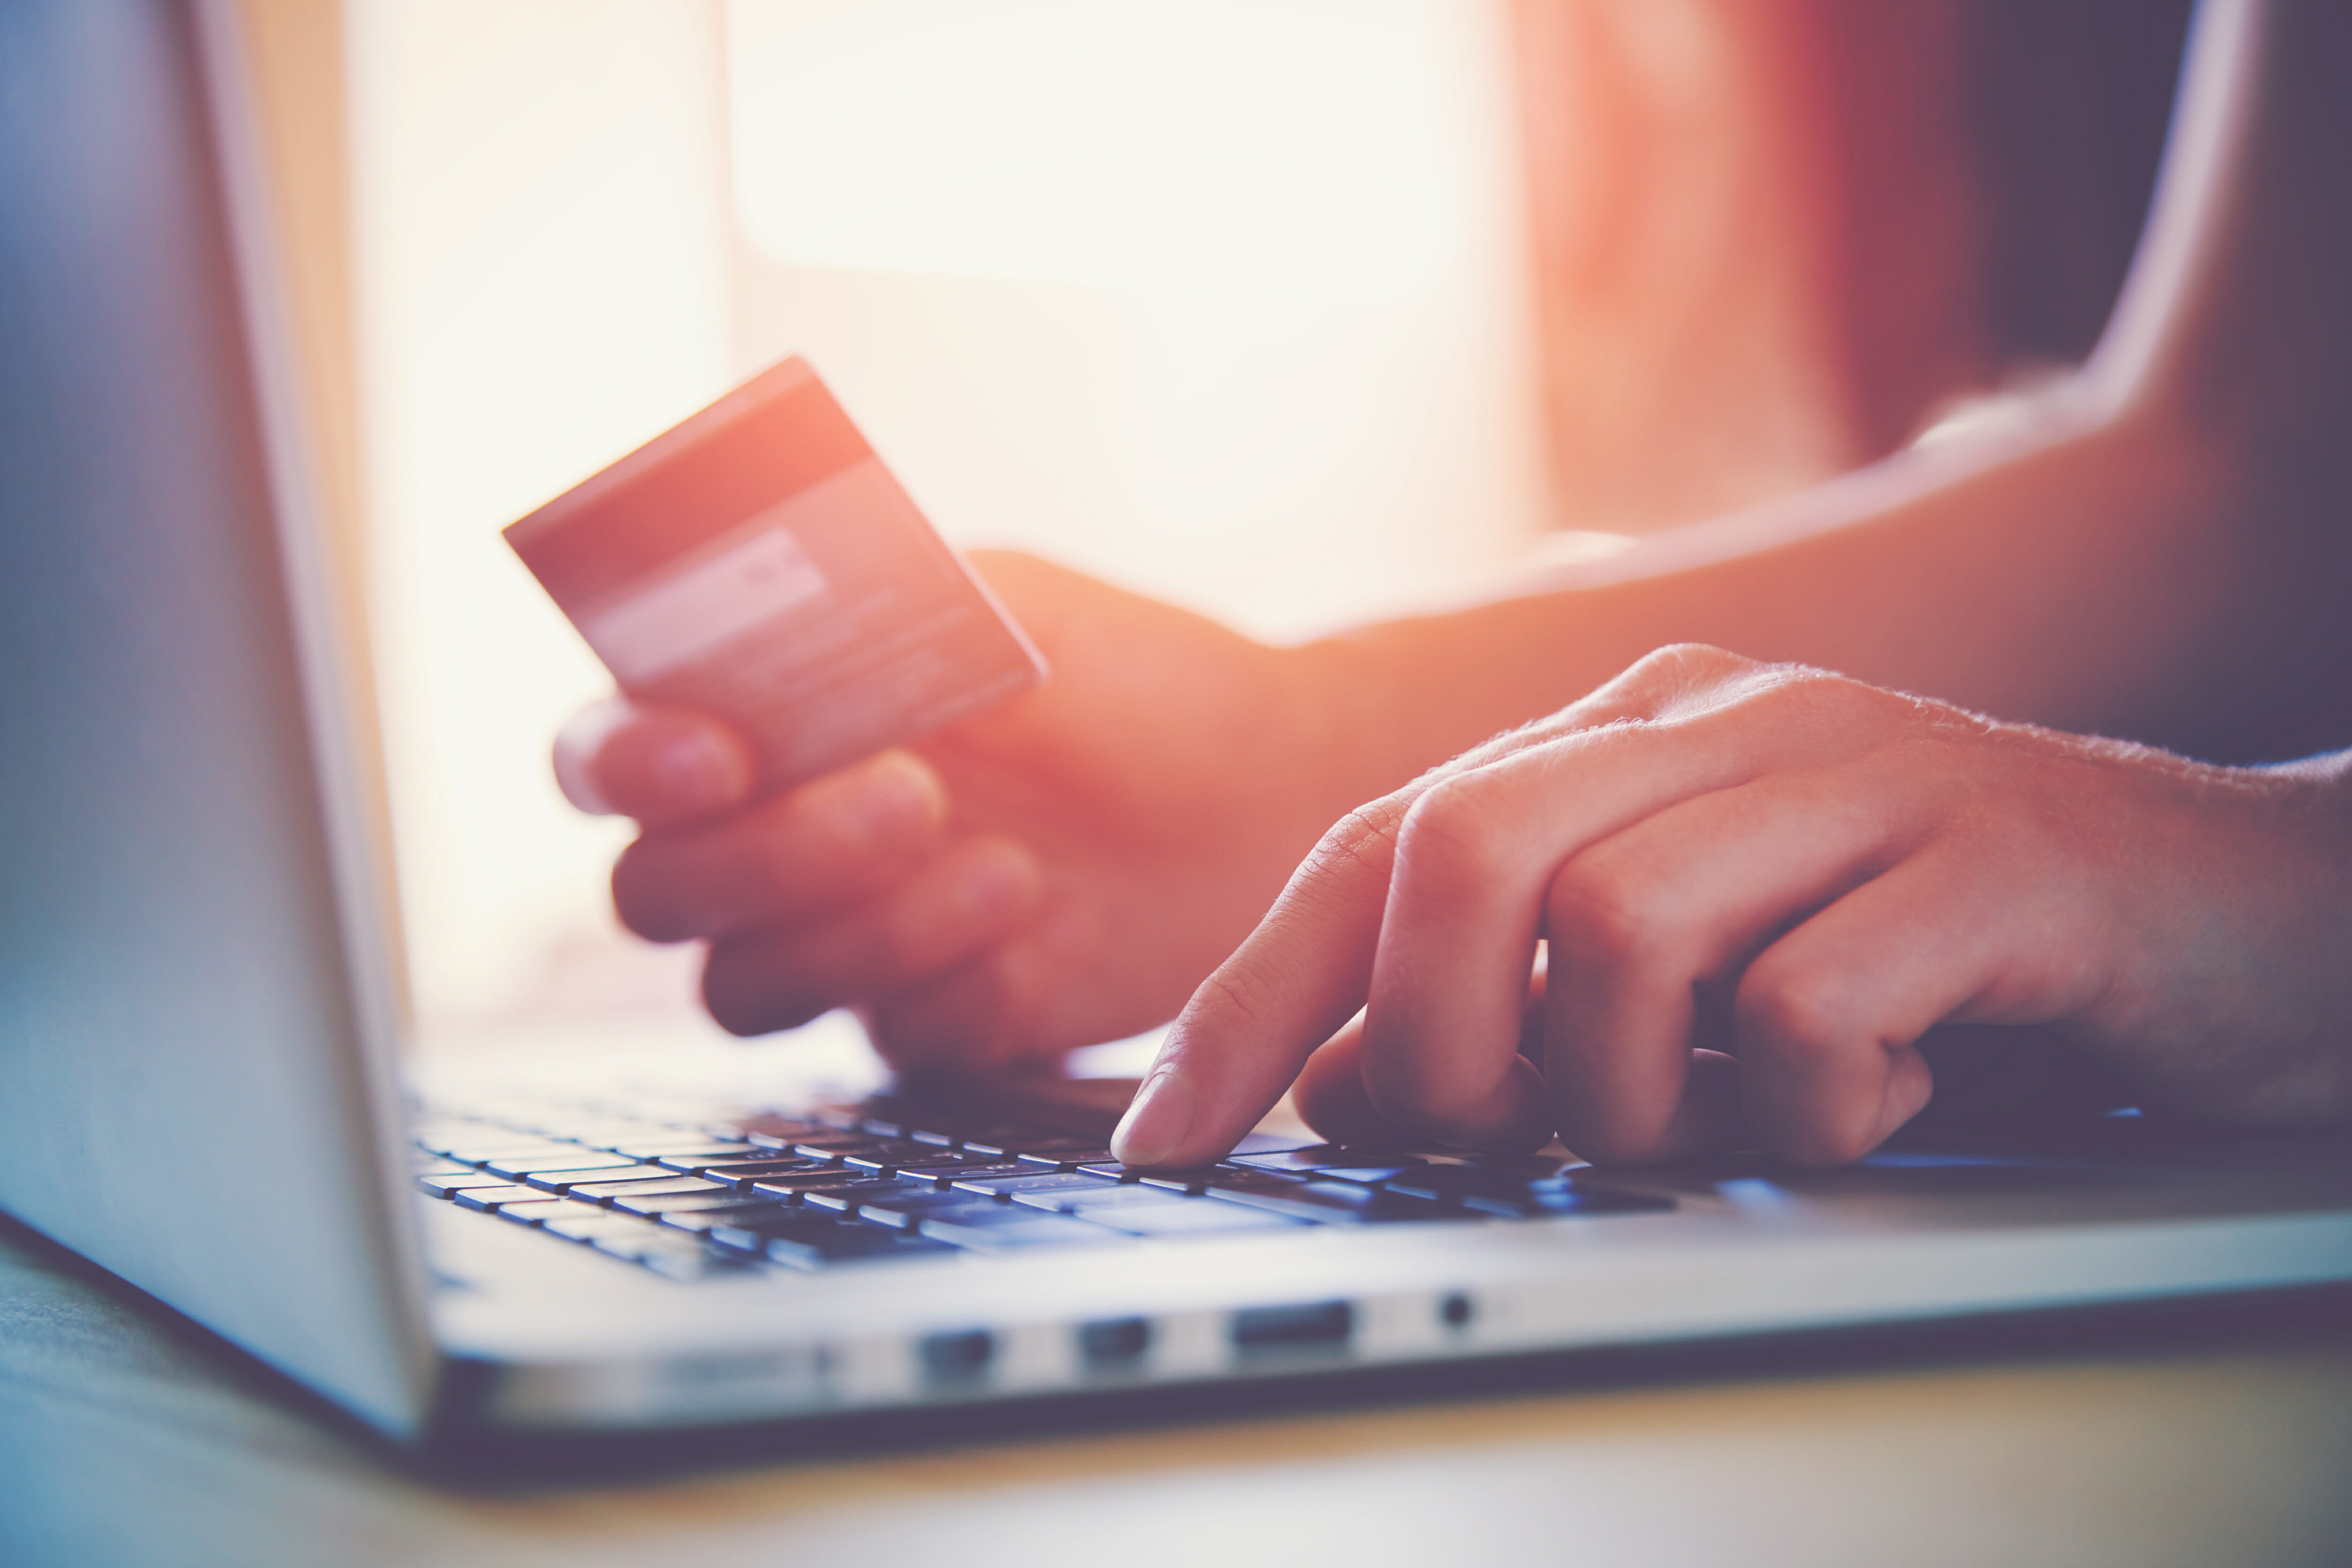 4 E-Commerce Trends That Drive Sales